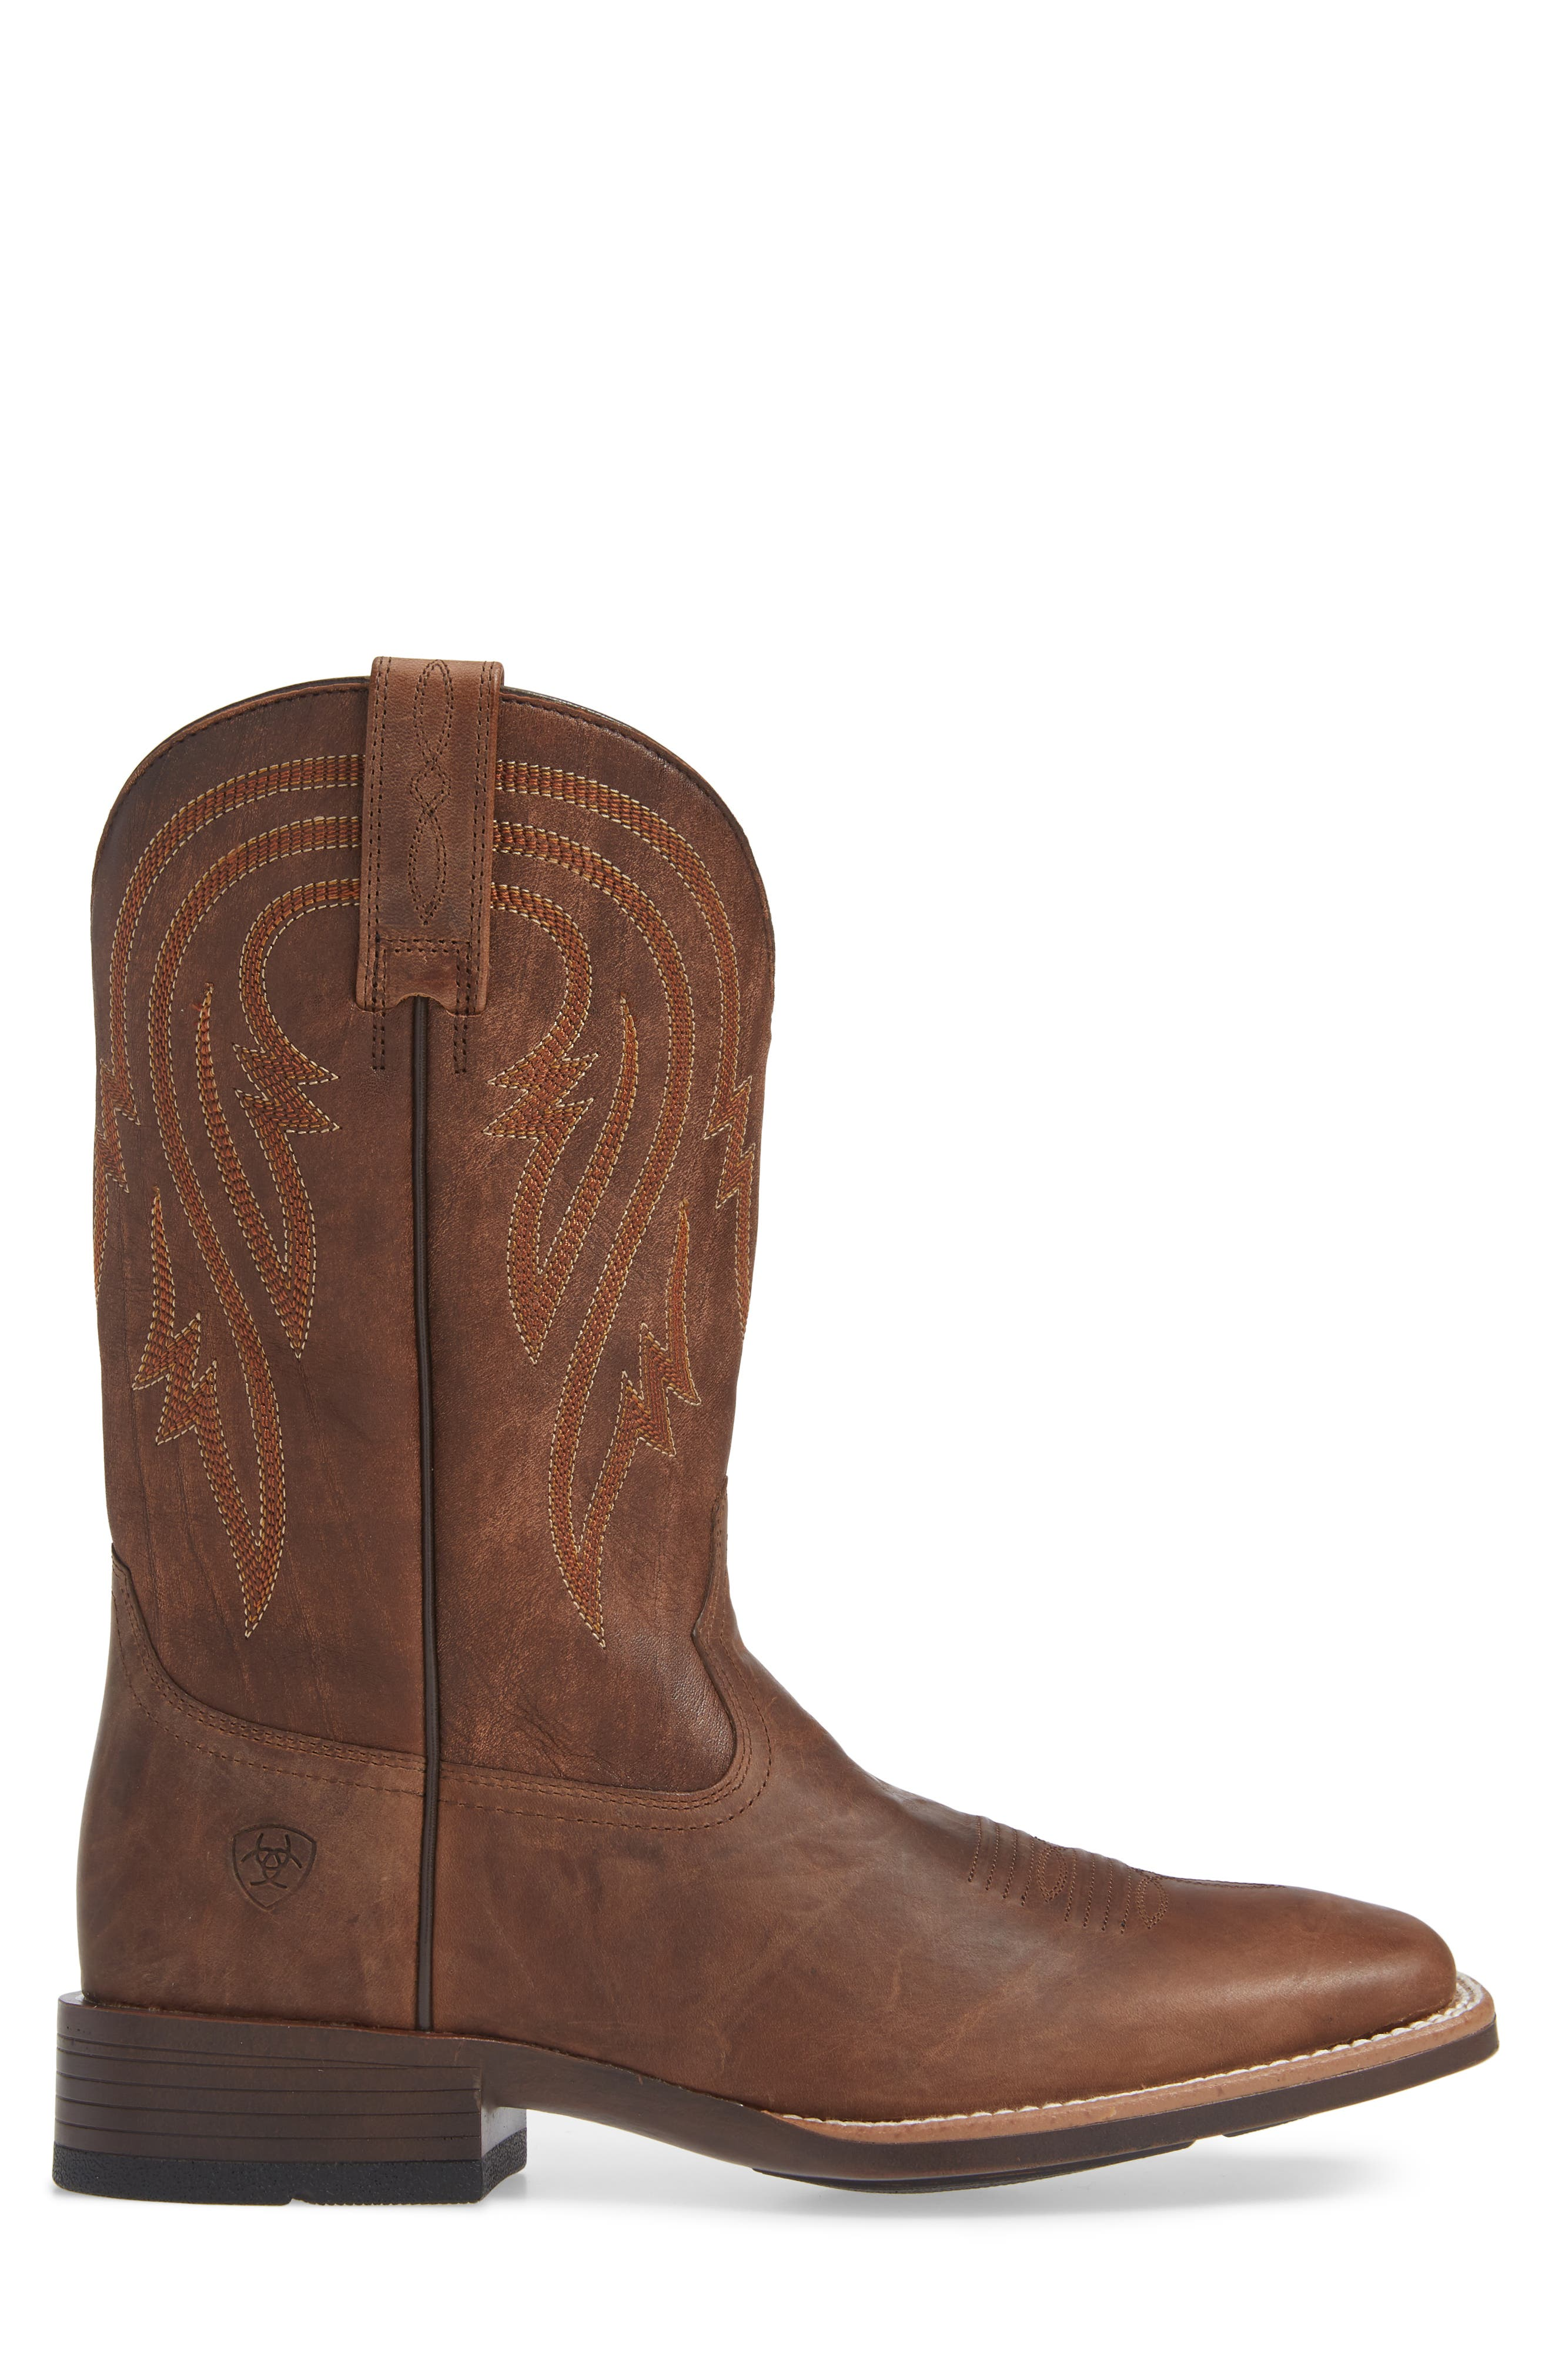 ARIAT, Plano Cowboy Boot, Alternate thumbnail 3, color, TANNIN/ TACK ROM LEATHER